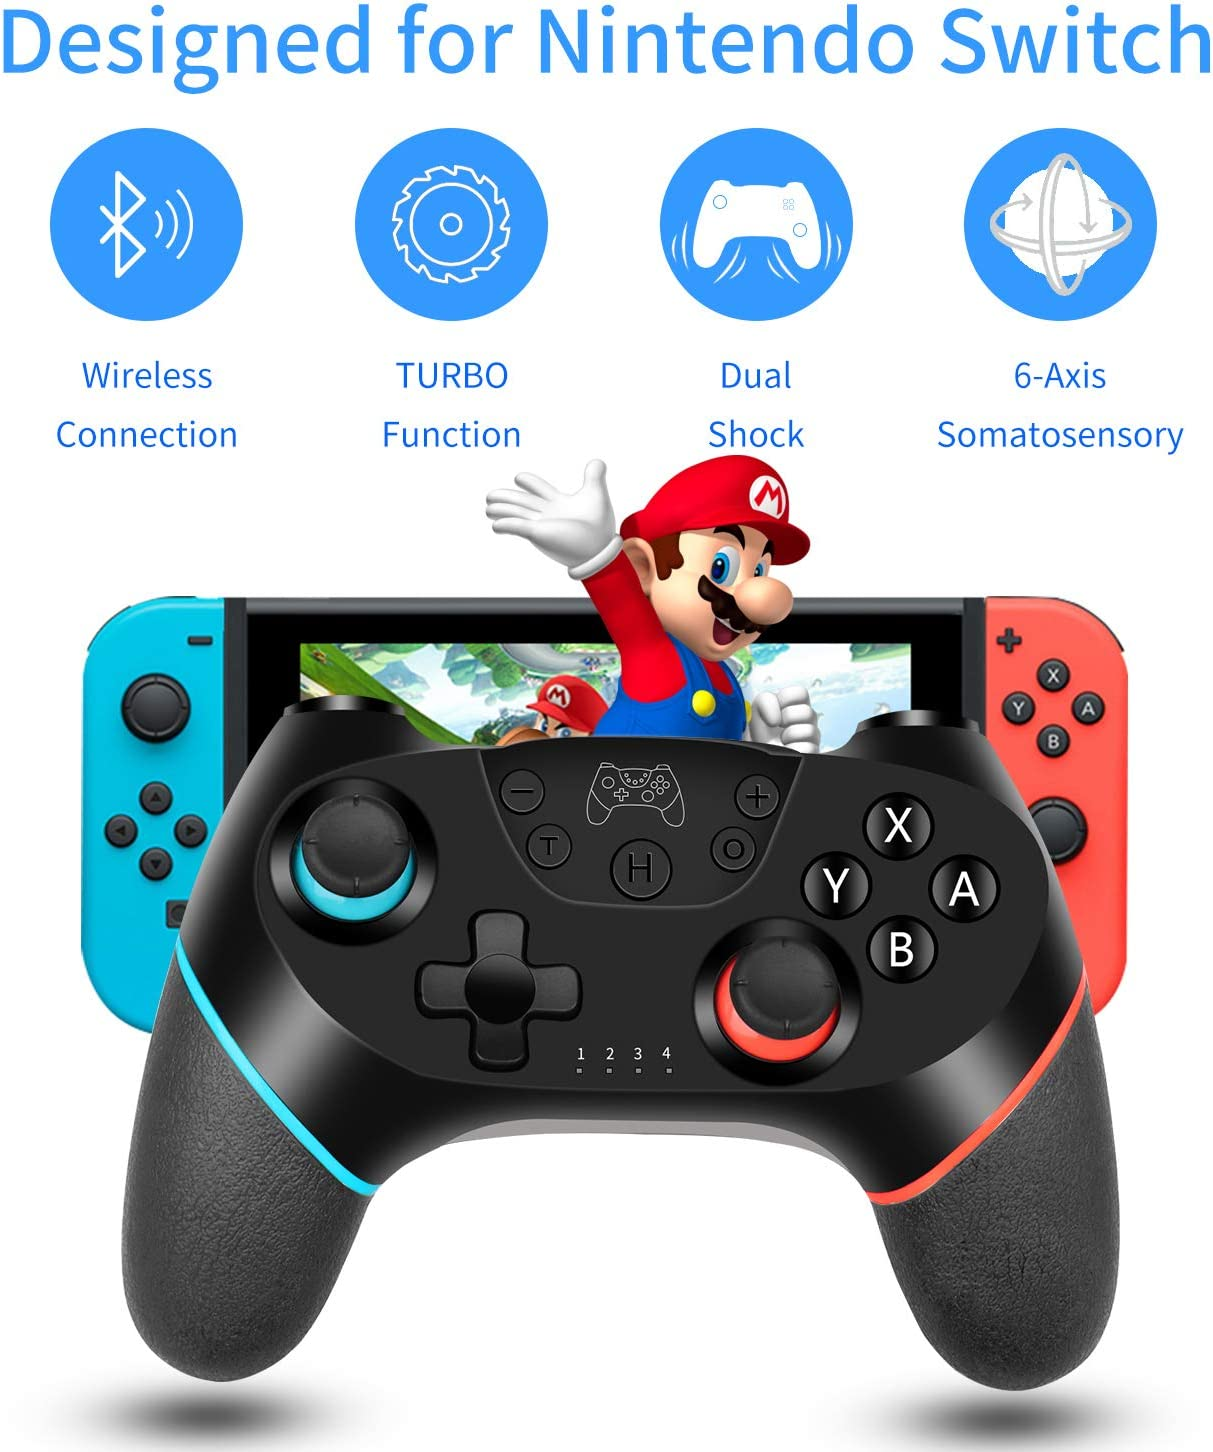 Amazon Promo Code 2020 for Wireless Switch Pro Controller Gamepad